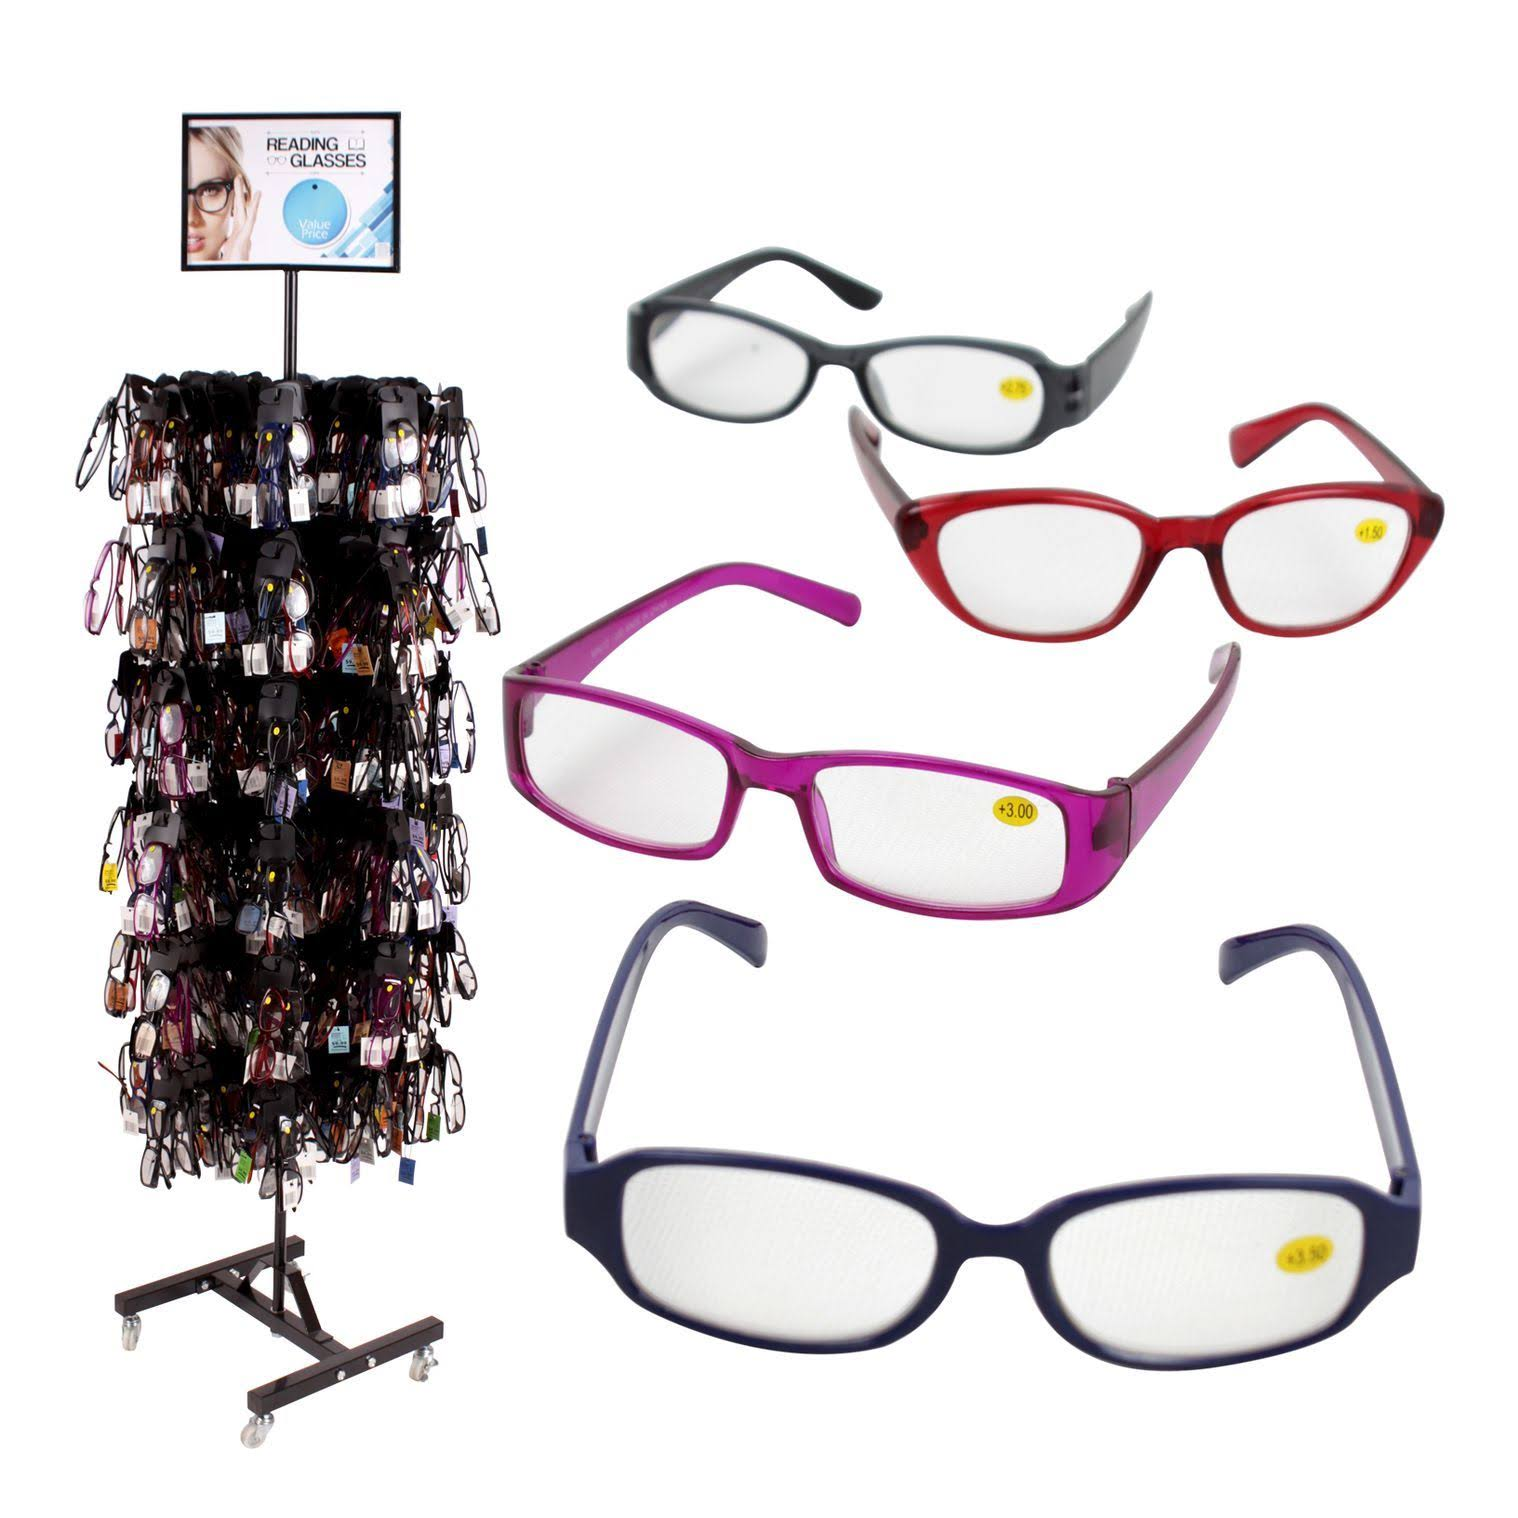 DDI Wholesale 24pcs Cheetah Reader Fashion Reading Glasses Display